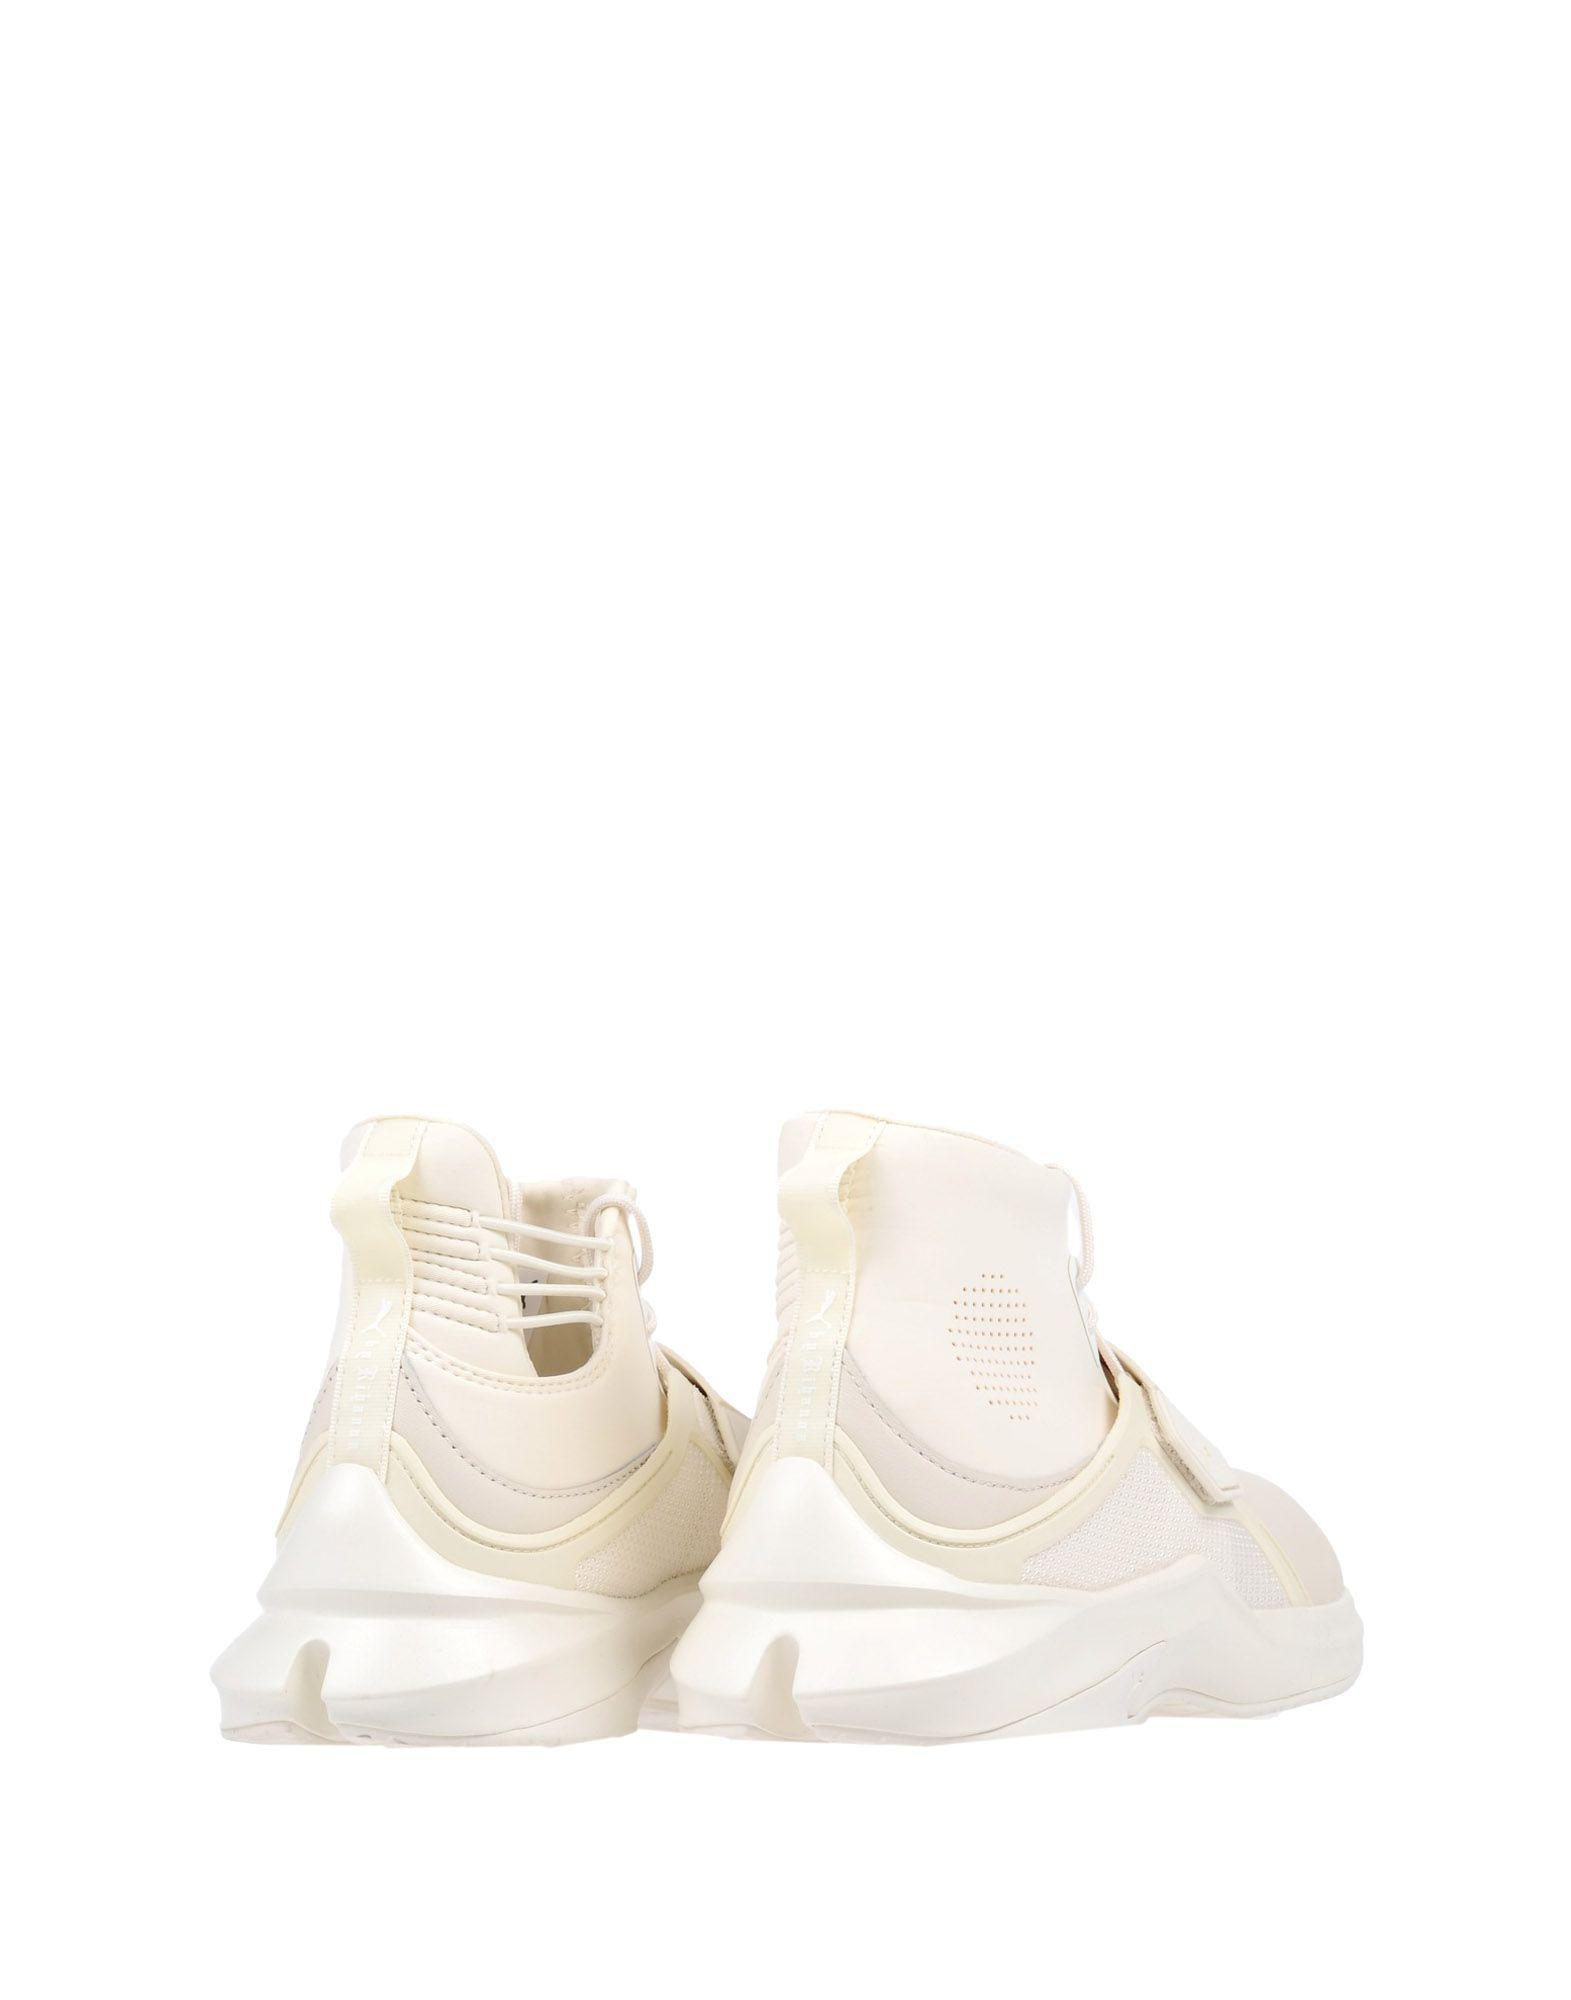 Fenty Leather High-tops & Sneakers in Ivory (White)